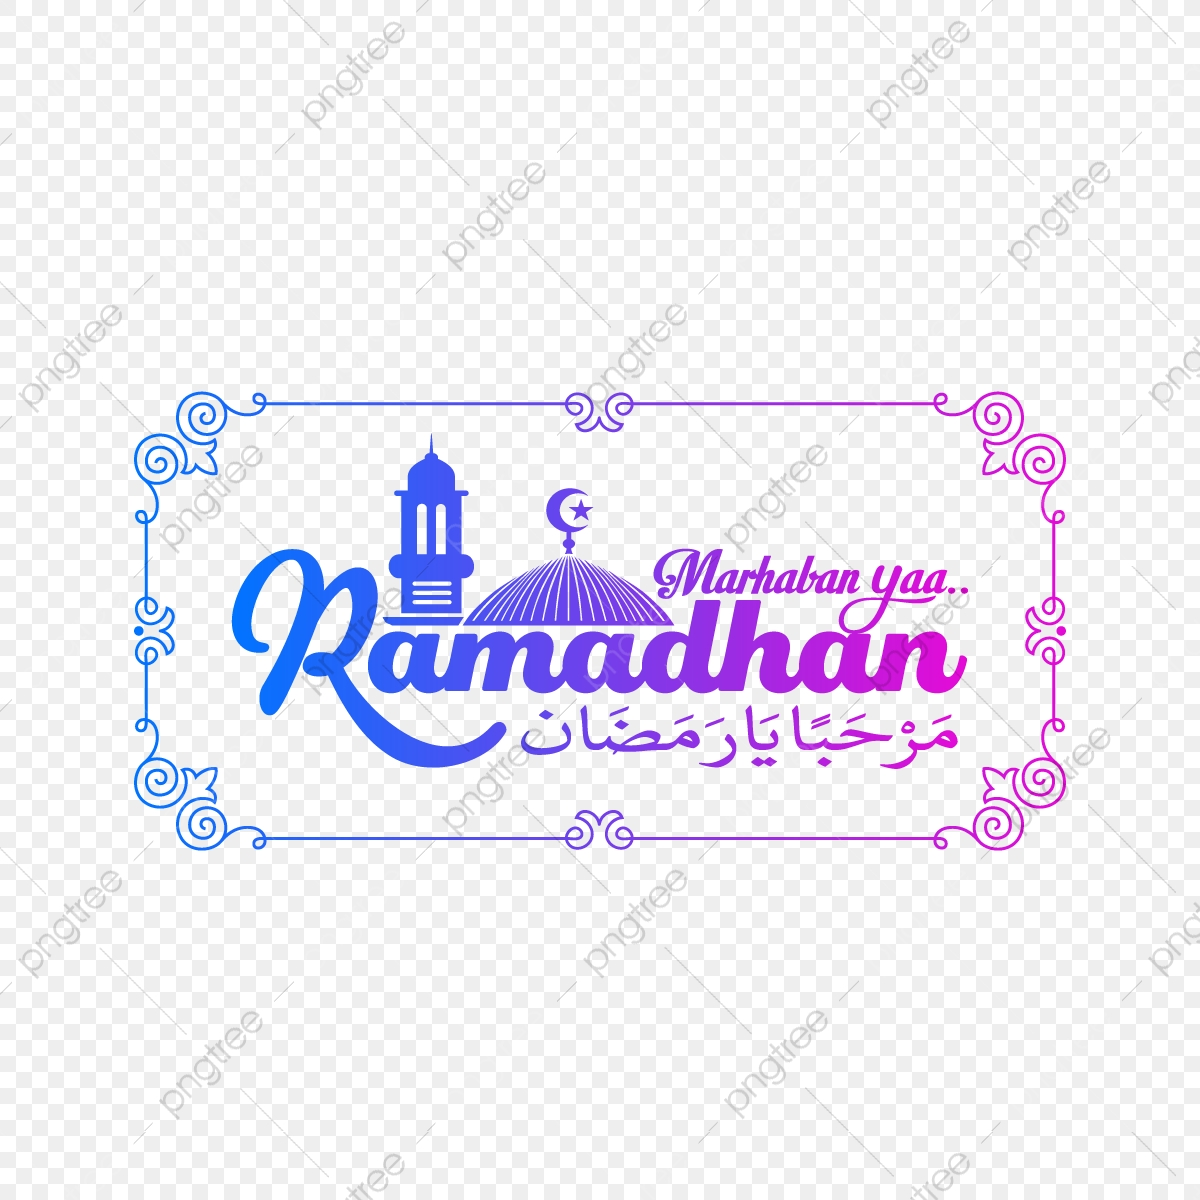 ramadhan png vector psd and clipart with transparent ...